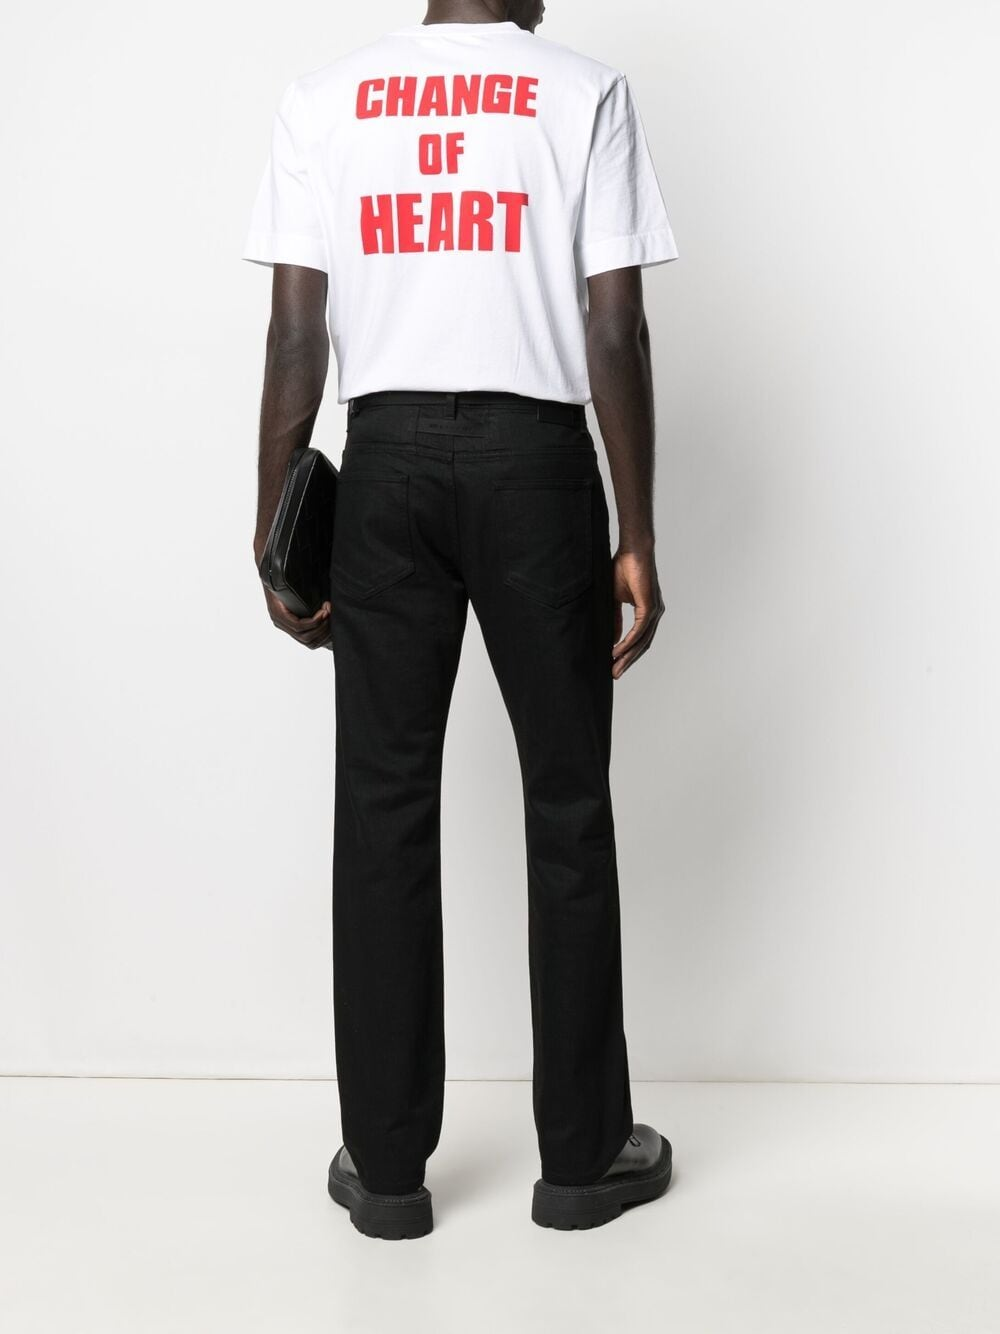 1017 Alyx 9sm change of heart s/s t-shirt man white